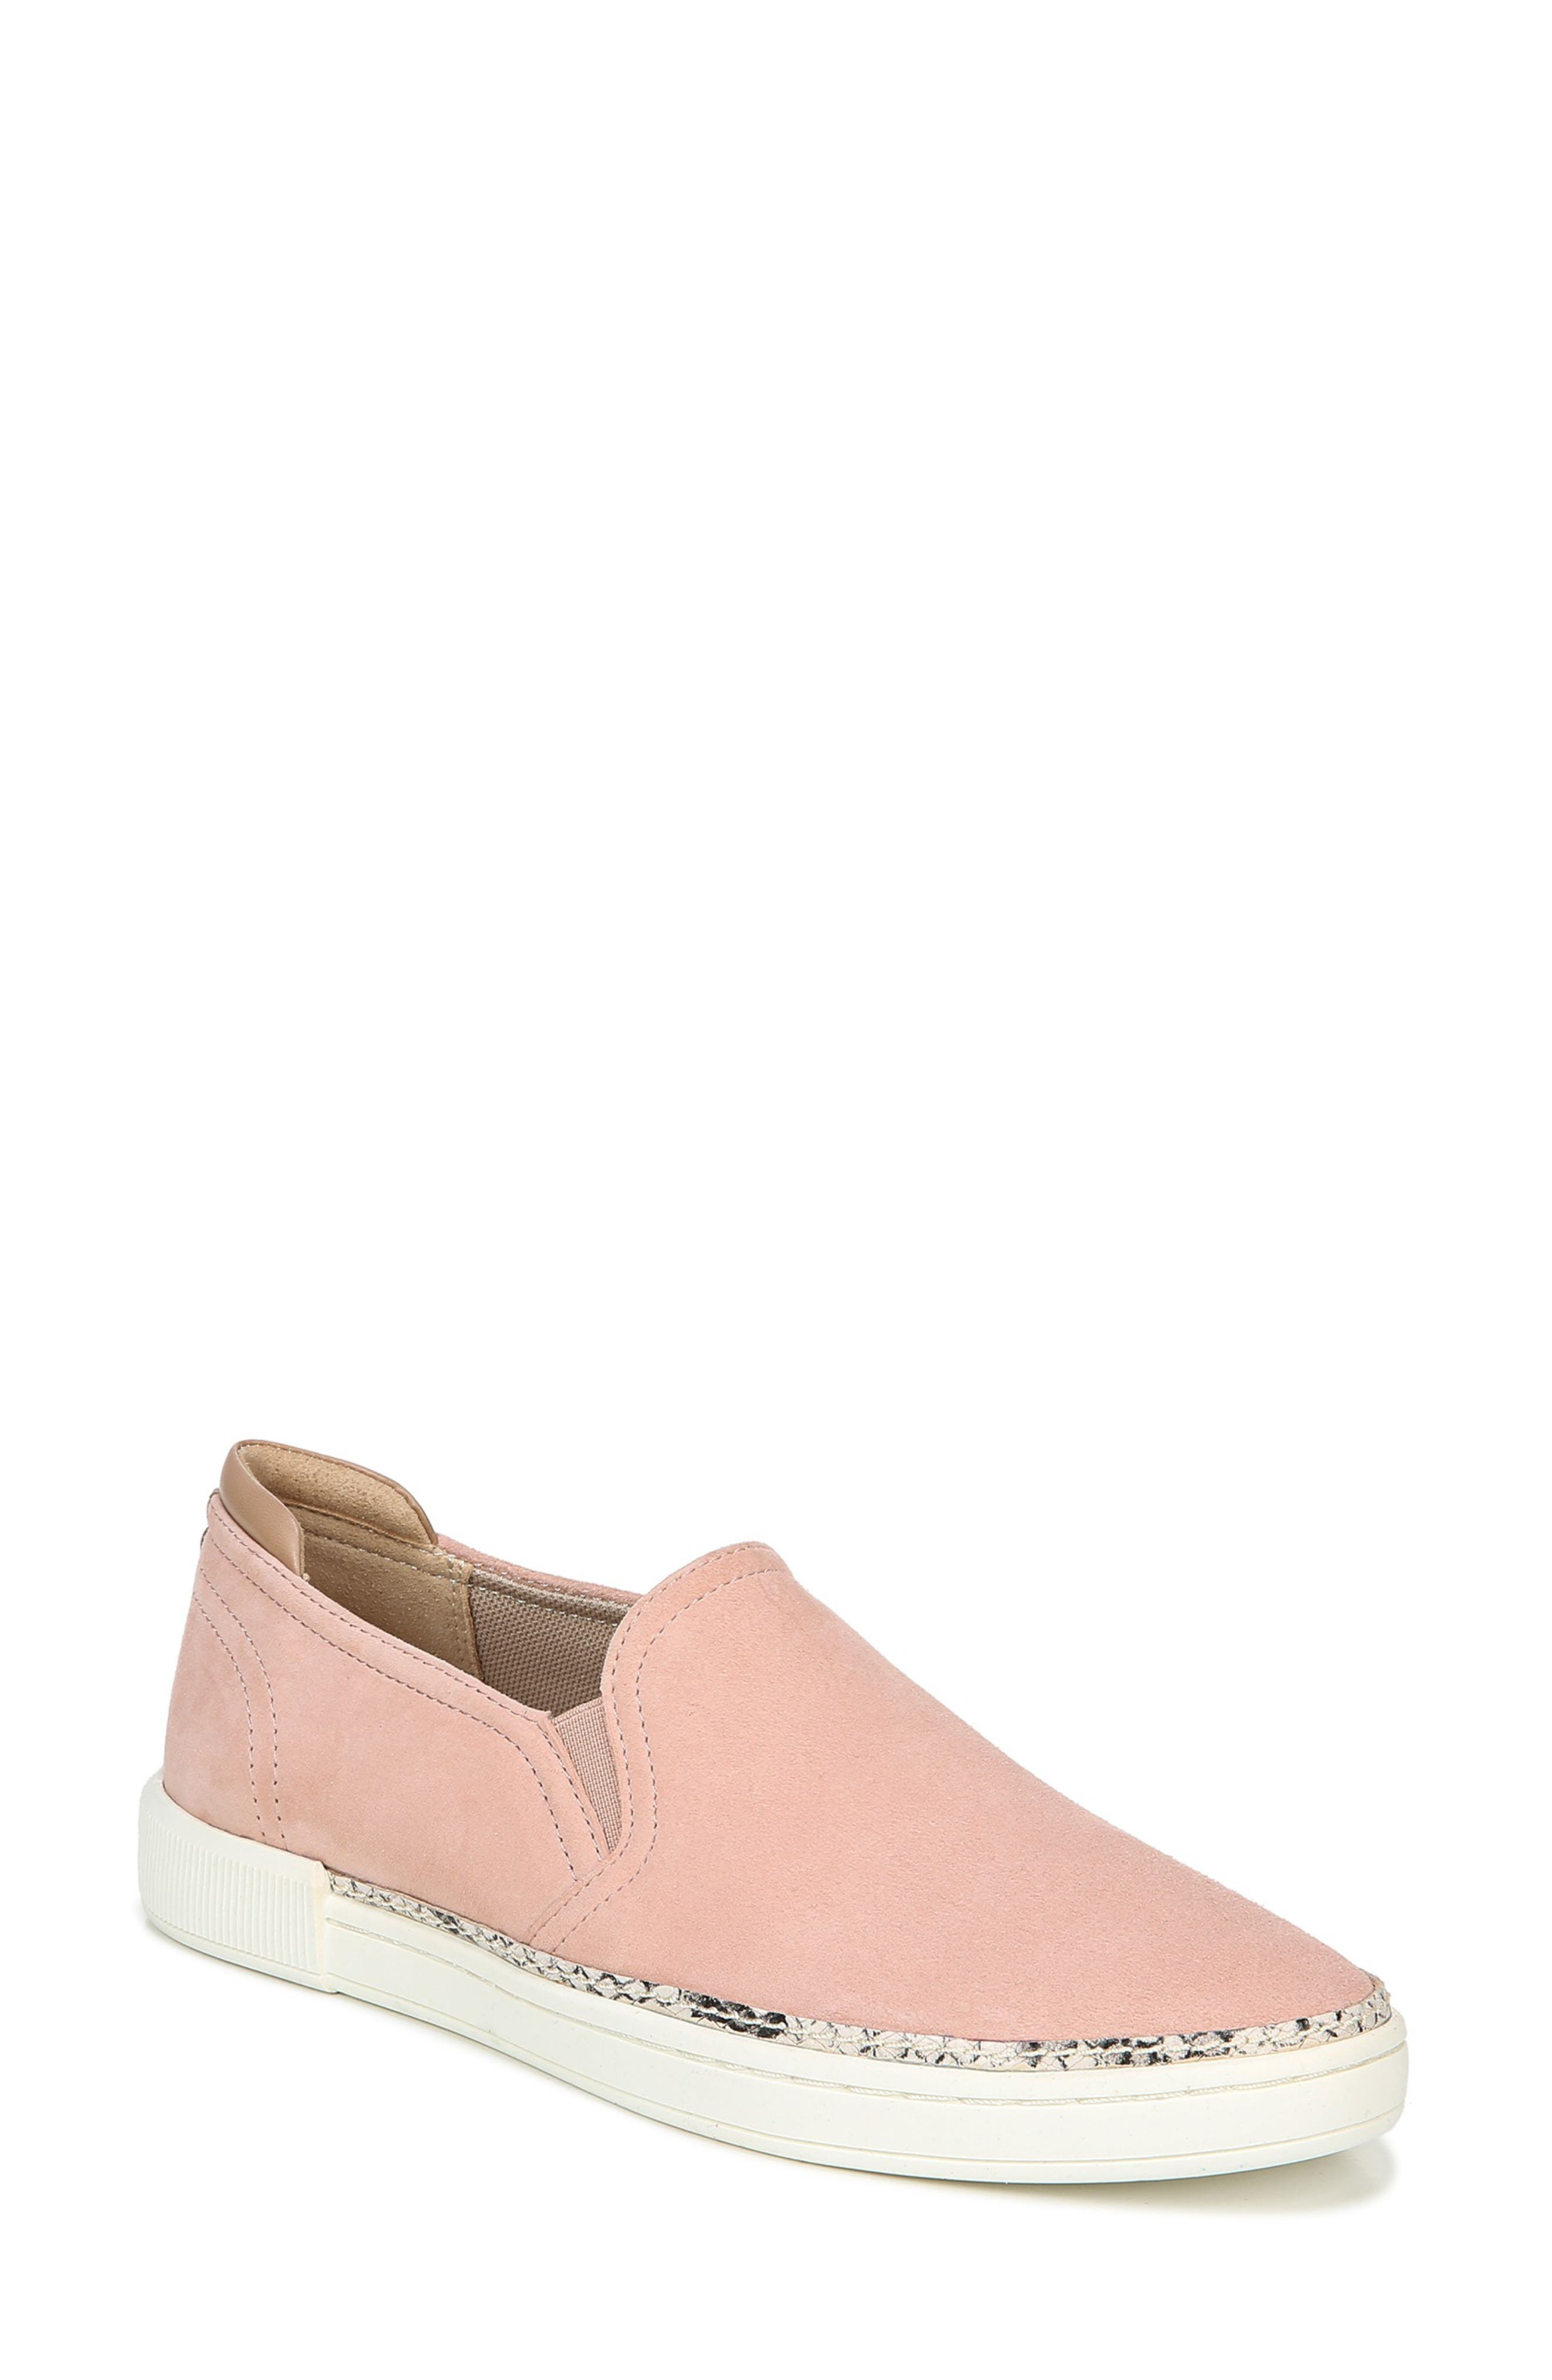 Narrow Width Shoes   Nordstrom